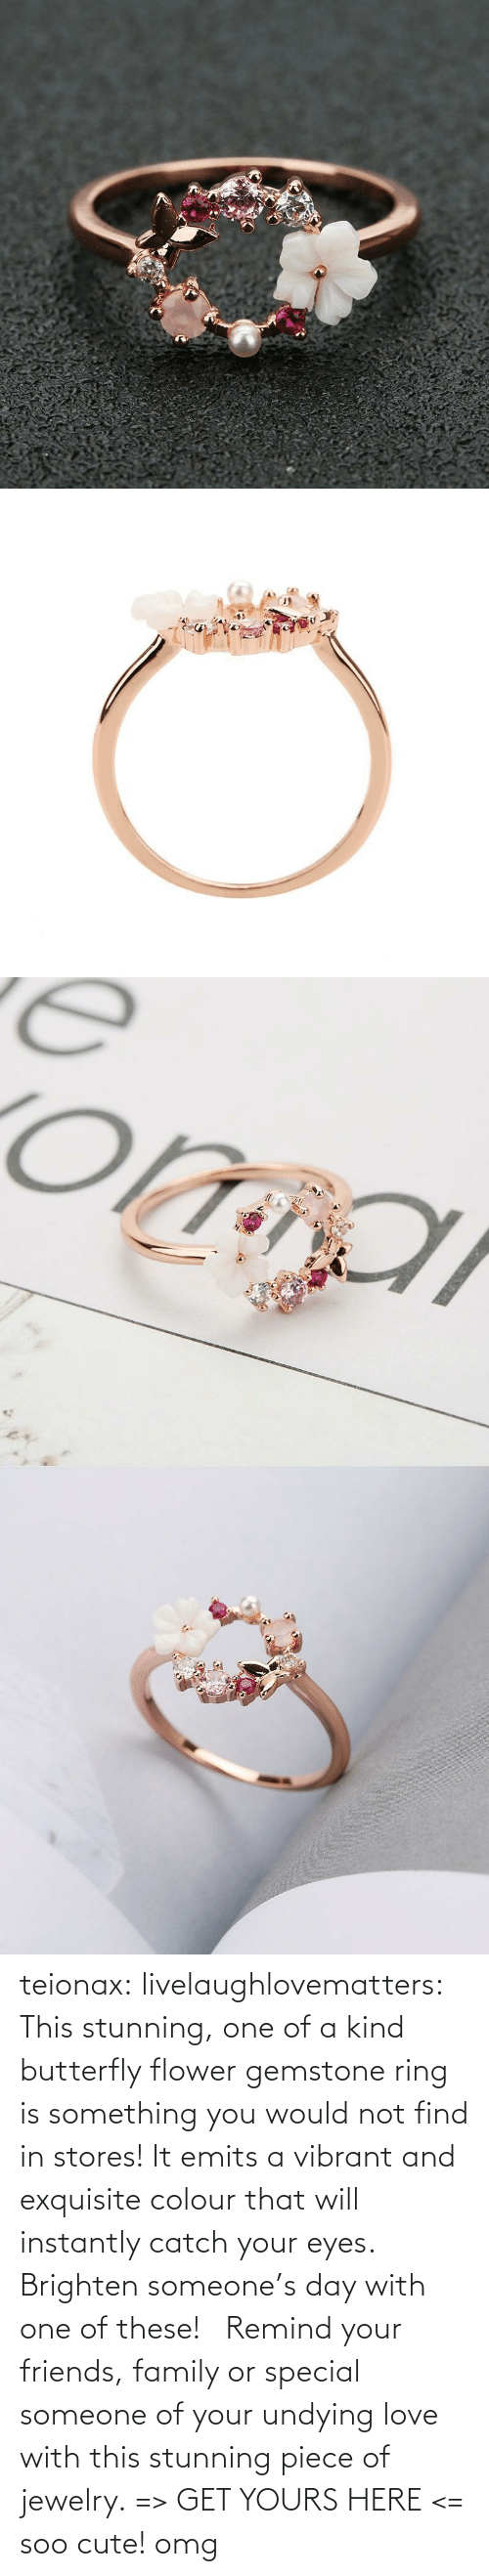 That Will: teionax: livelaughlovematters:  This stunning, one of a kind butterfly flower gemstone ring is something you would not find in stores! It emits a vibrant and exquisite colour that will instantly catch your eyes. Brighten someone's day with one of these!  Remind your friends, family or special someone of your undying love with this stunning piece of jewelry. => GET YOURS HERE <=    soo cute! omg